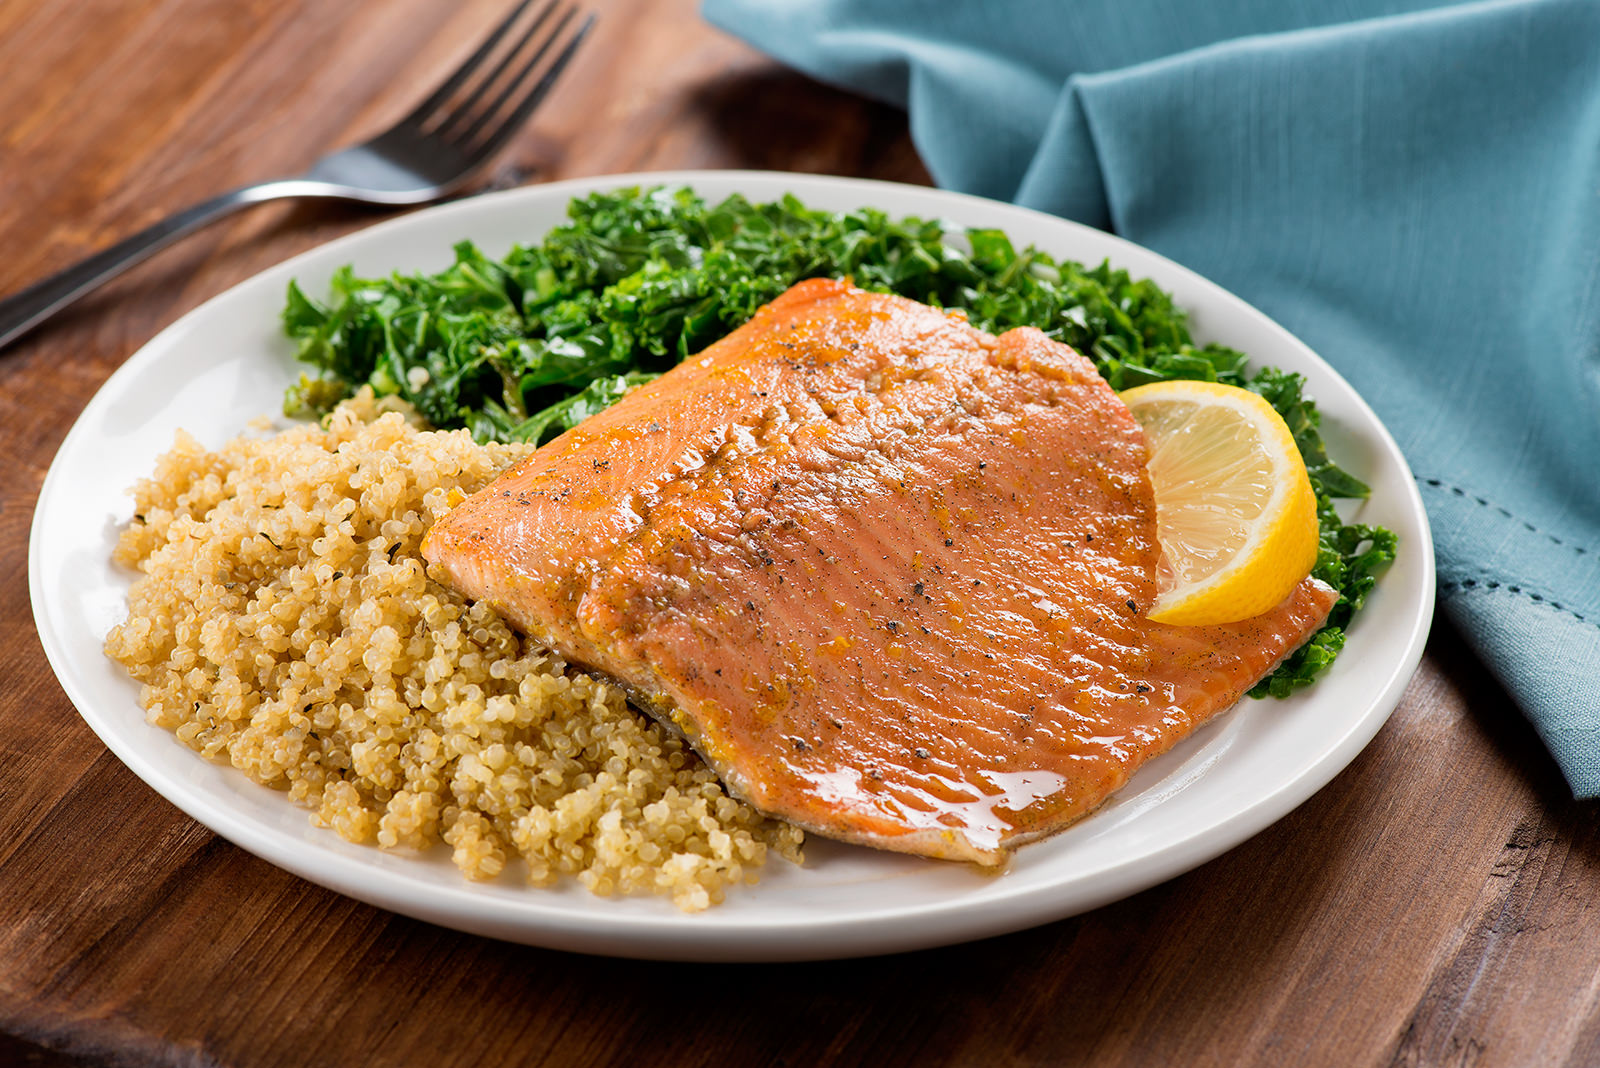 Cardamom-Orange-Trout-with-Quinoa-and-Kale-028.jpg